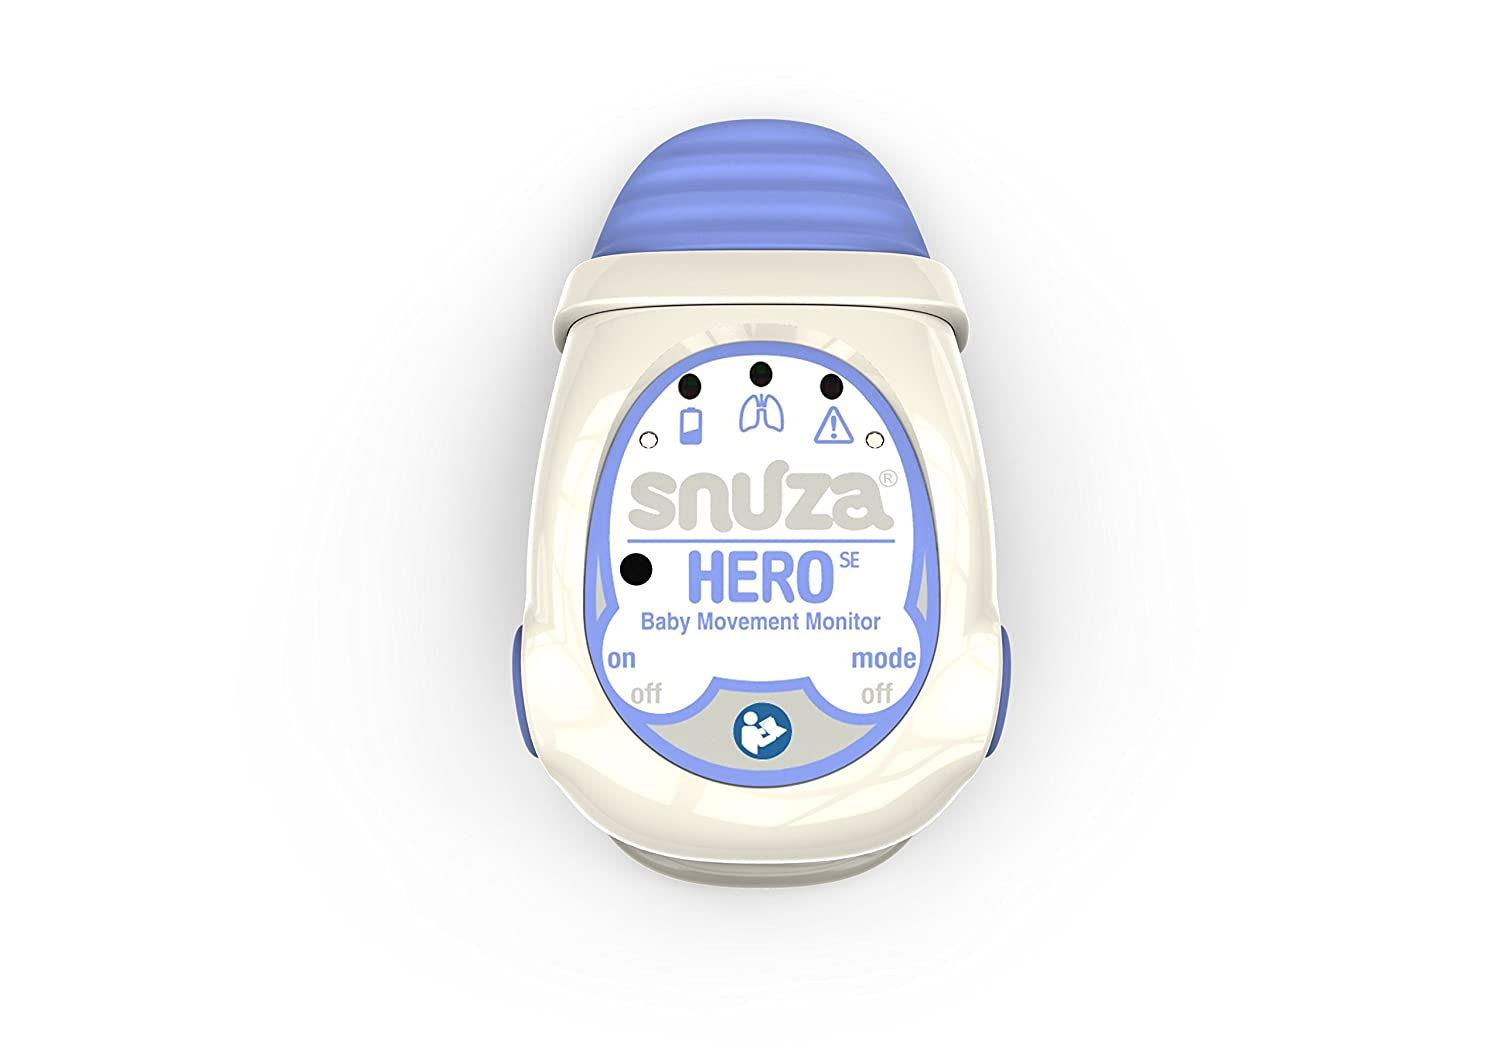 Snuza Hero SE Baby Movement Monitor Renewed